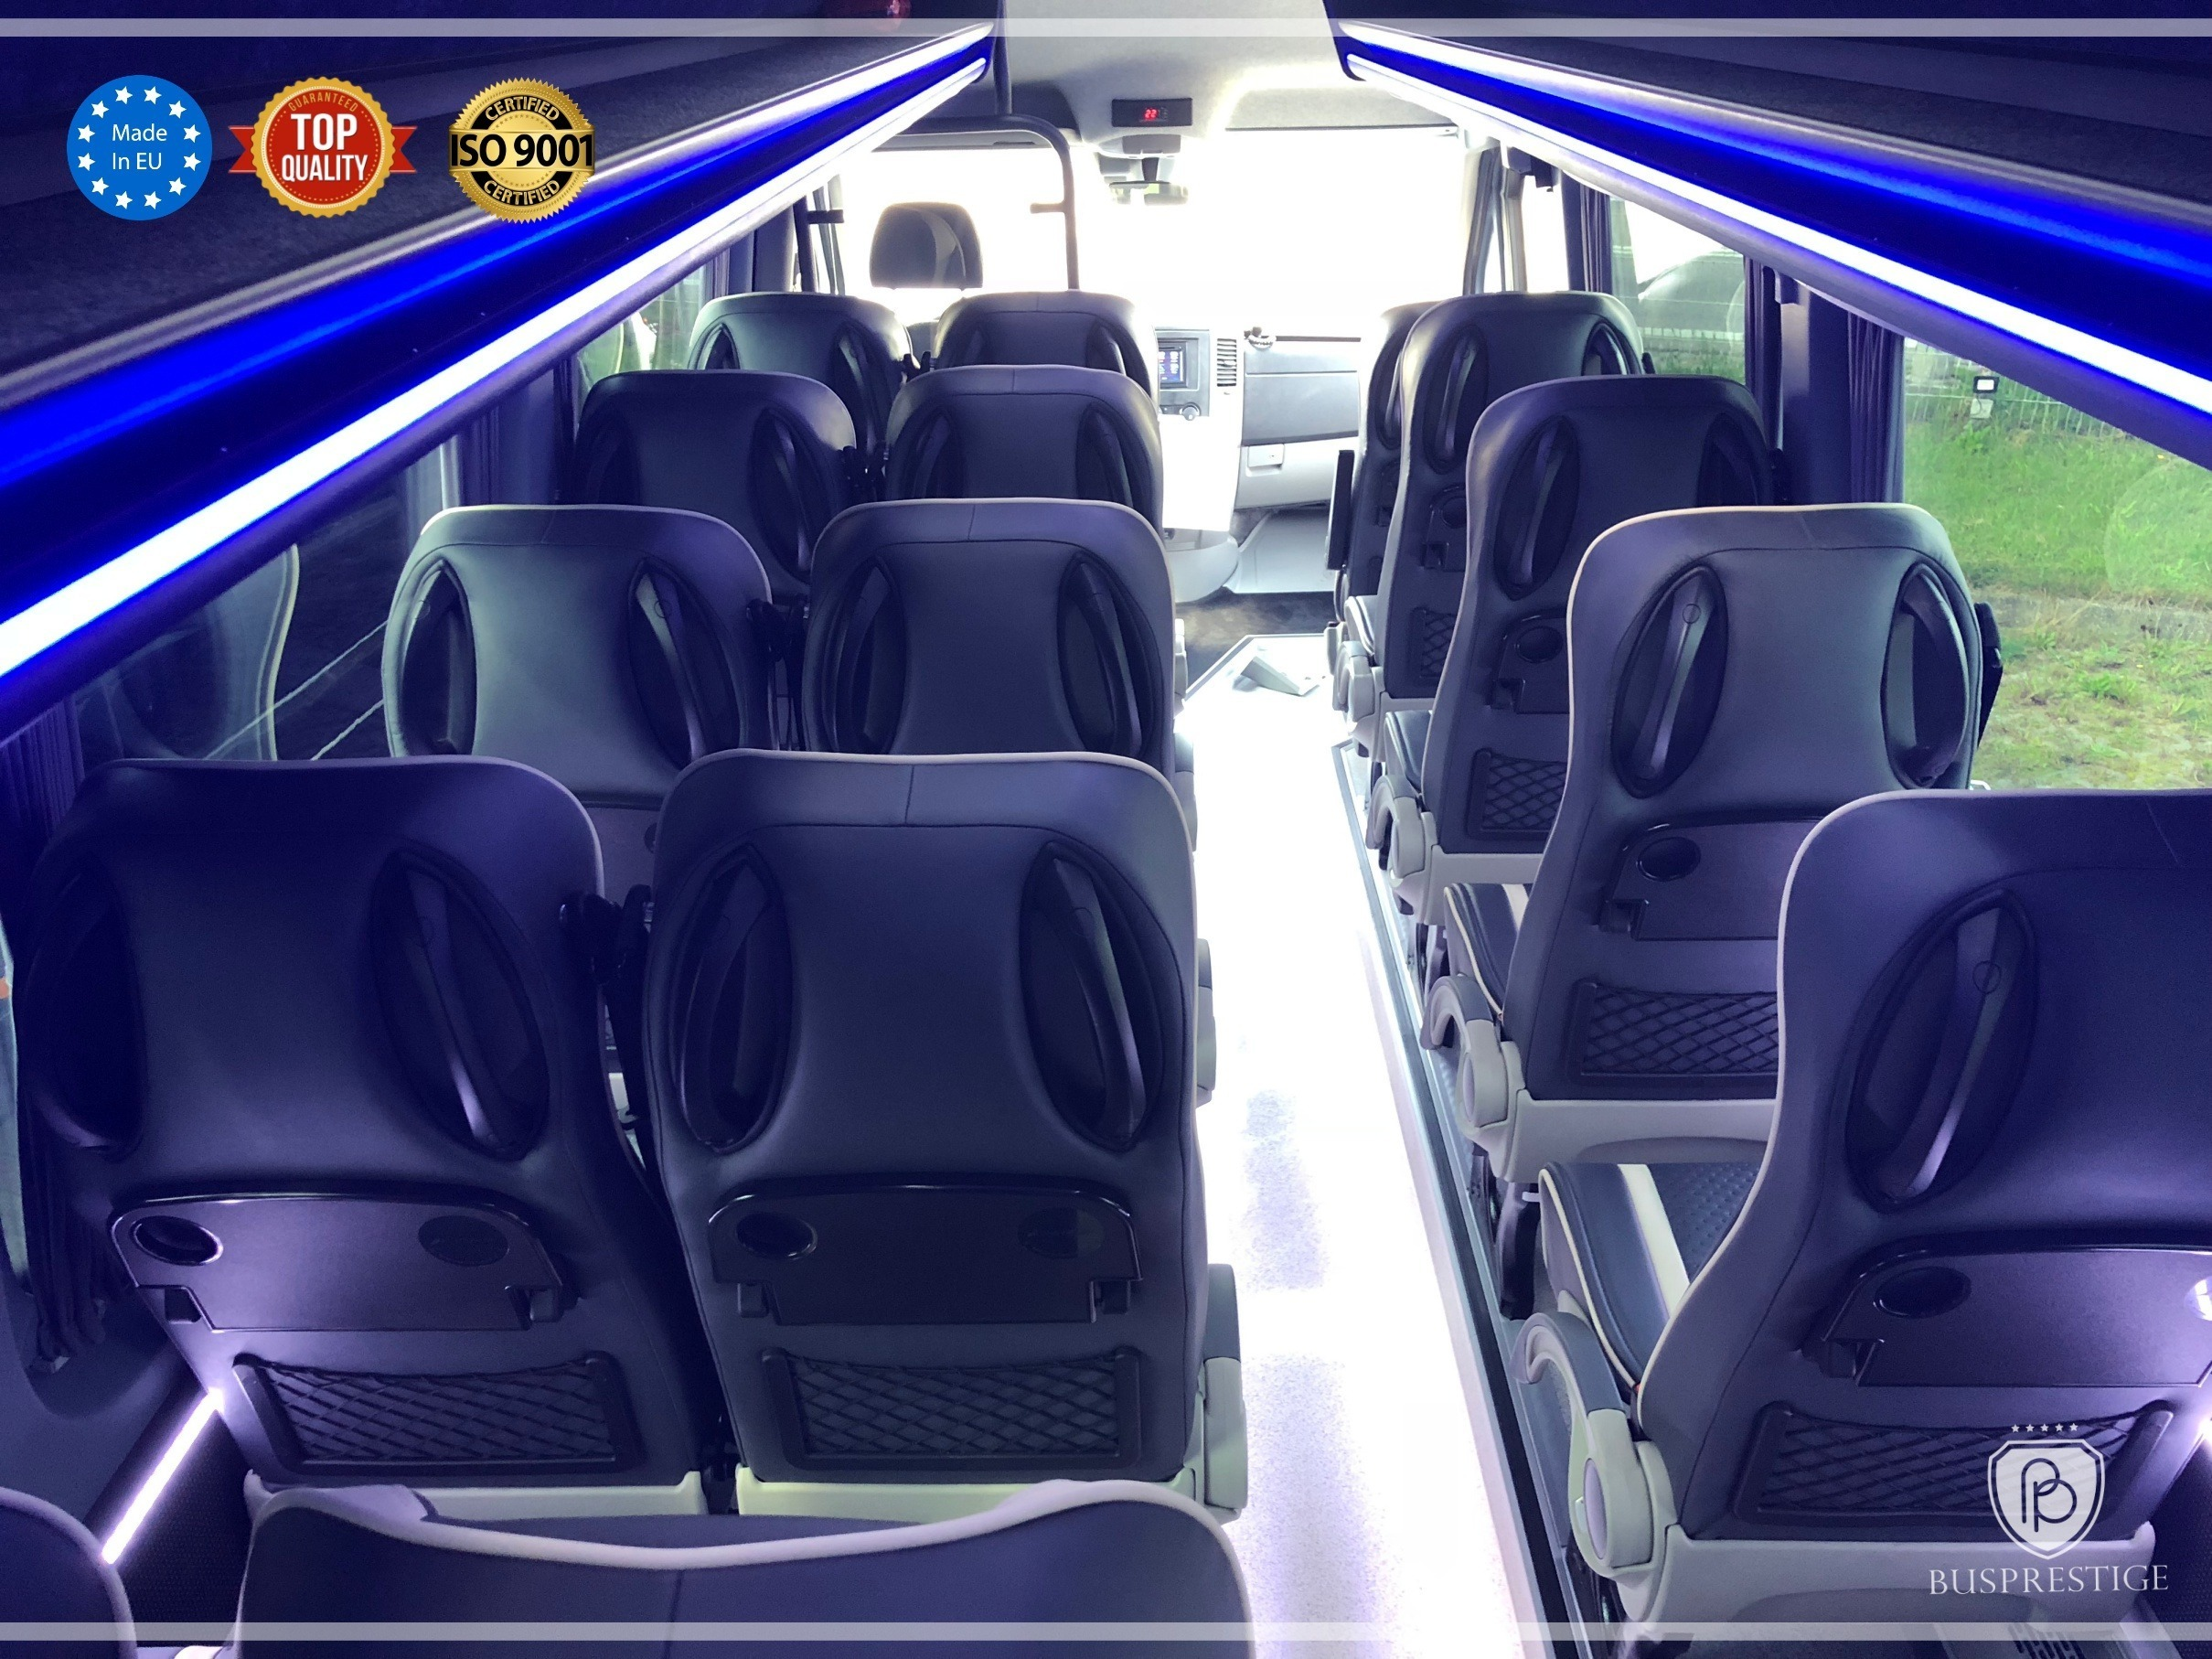 bus_prestige_sprinter_seat_rear_view